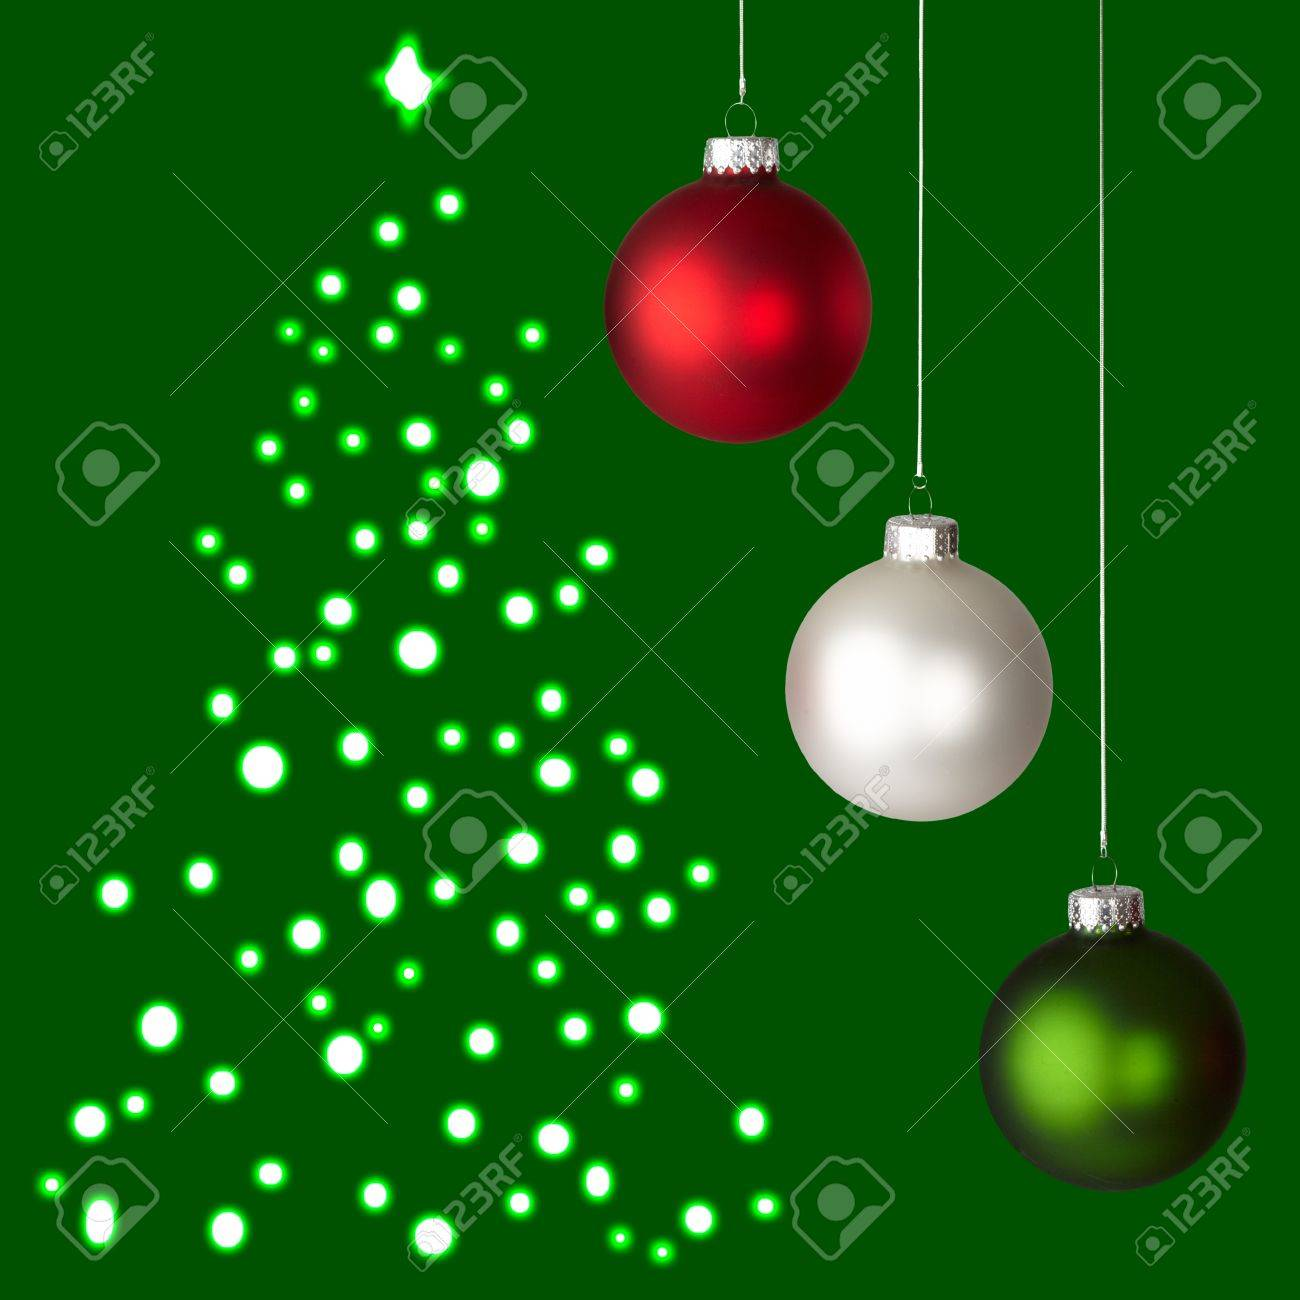 Christmas Ornaments Background.White Red And Green Christmas Ornaments On Green Christmas Tree